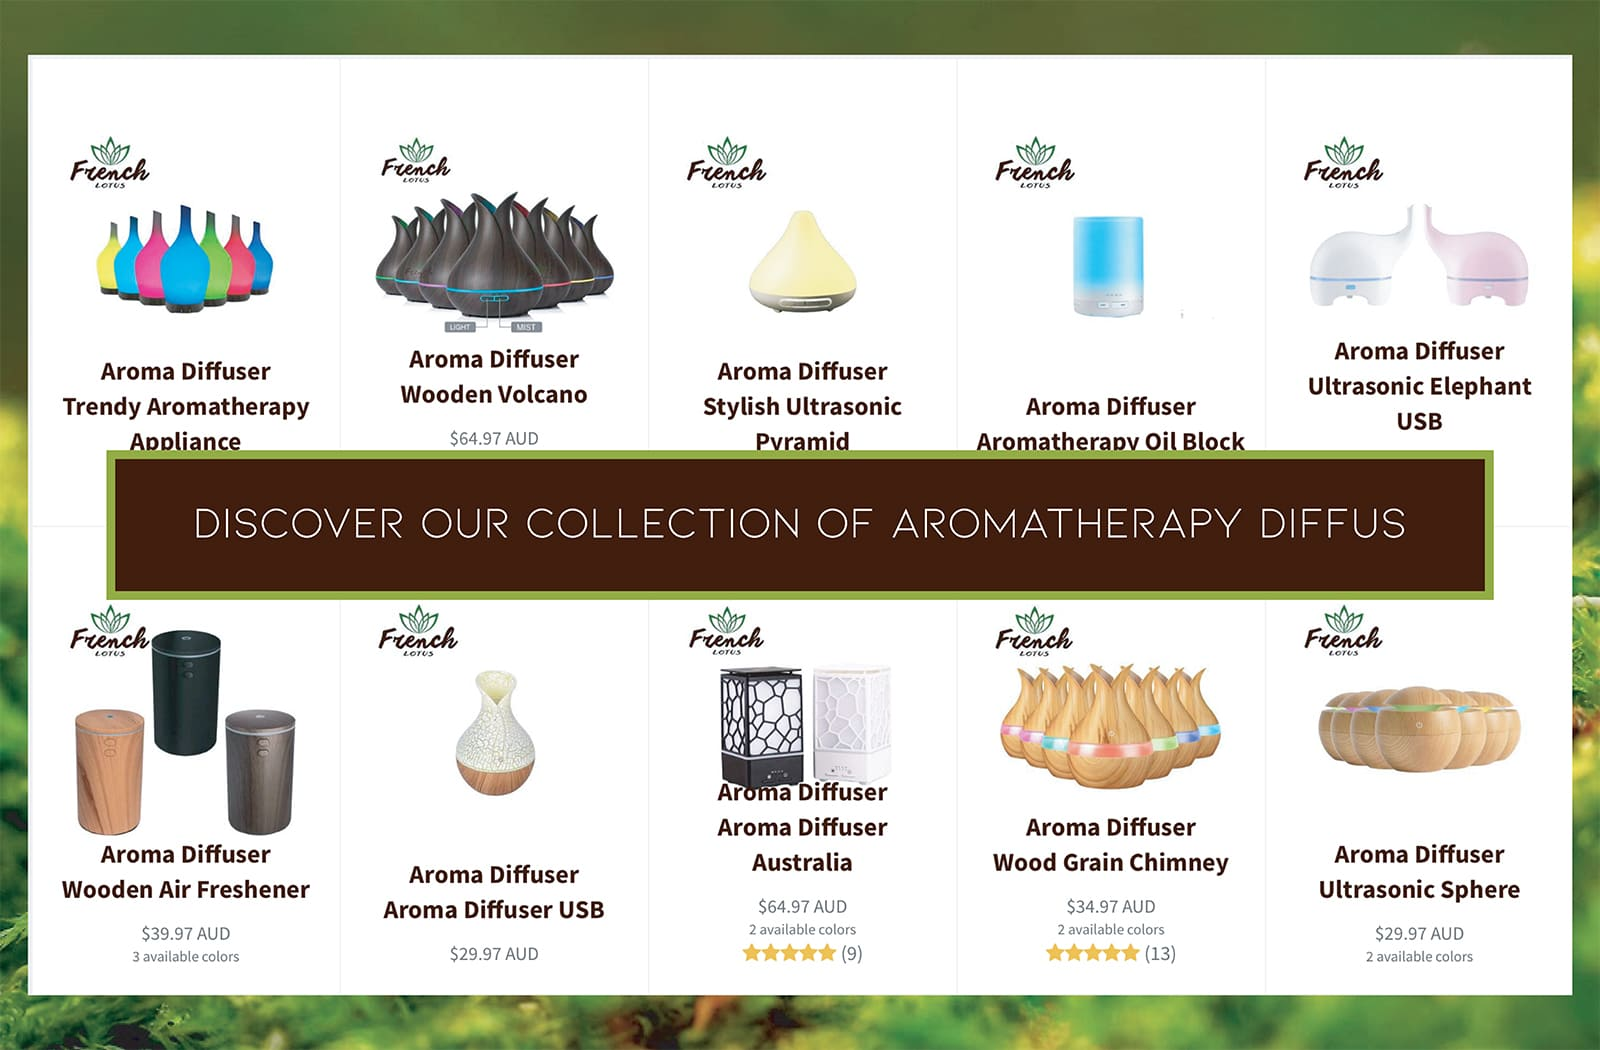 Selection of Aromatherapy oil diffusers